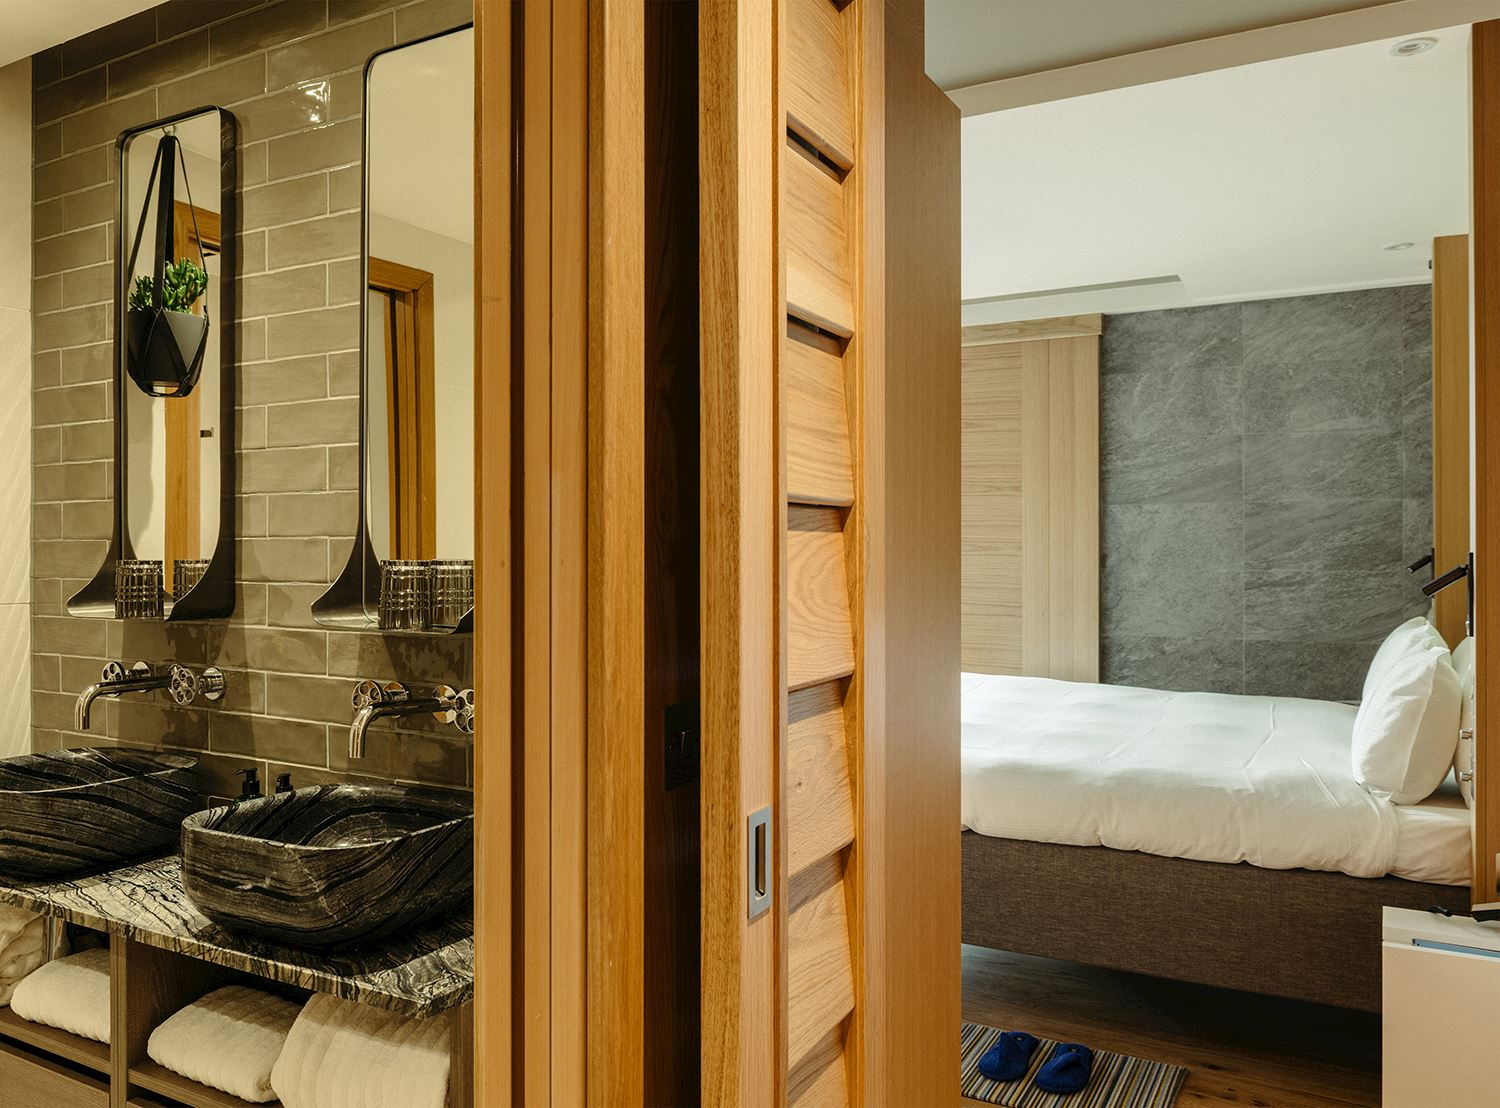 650-x-480-market-street-hotel-roomy-bath-bedroom